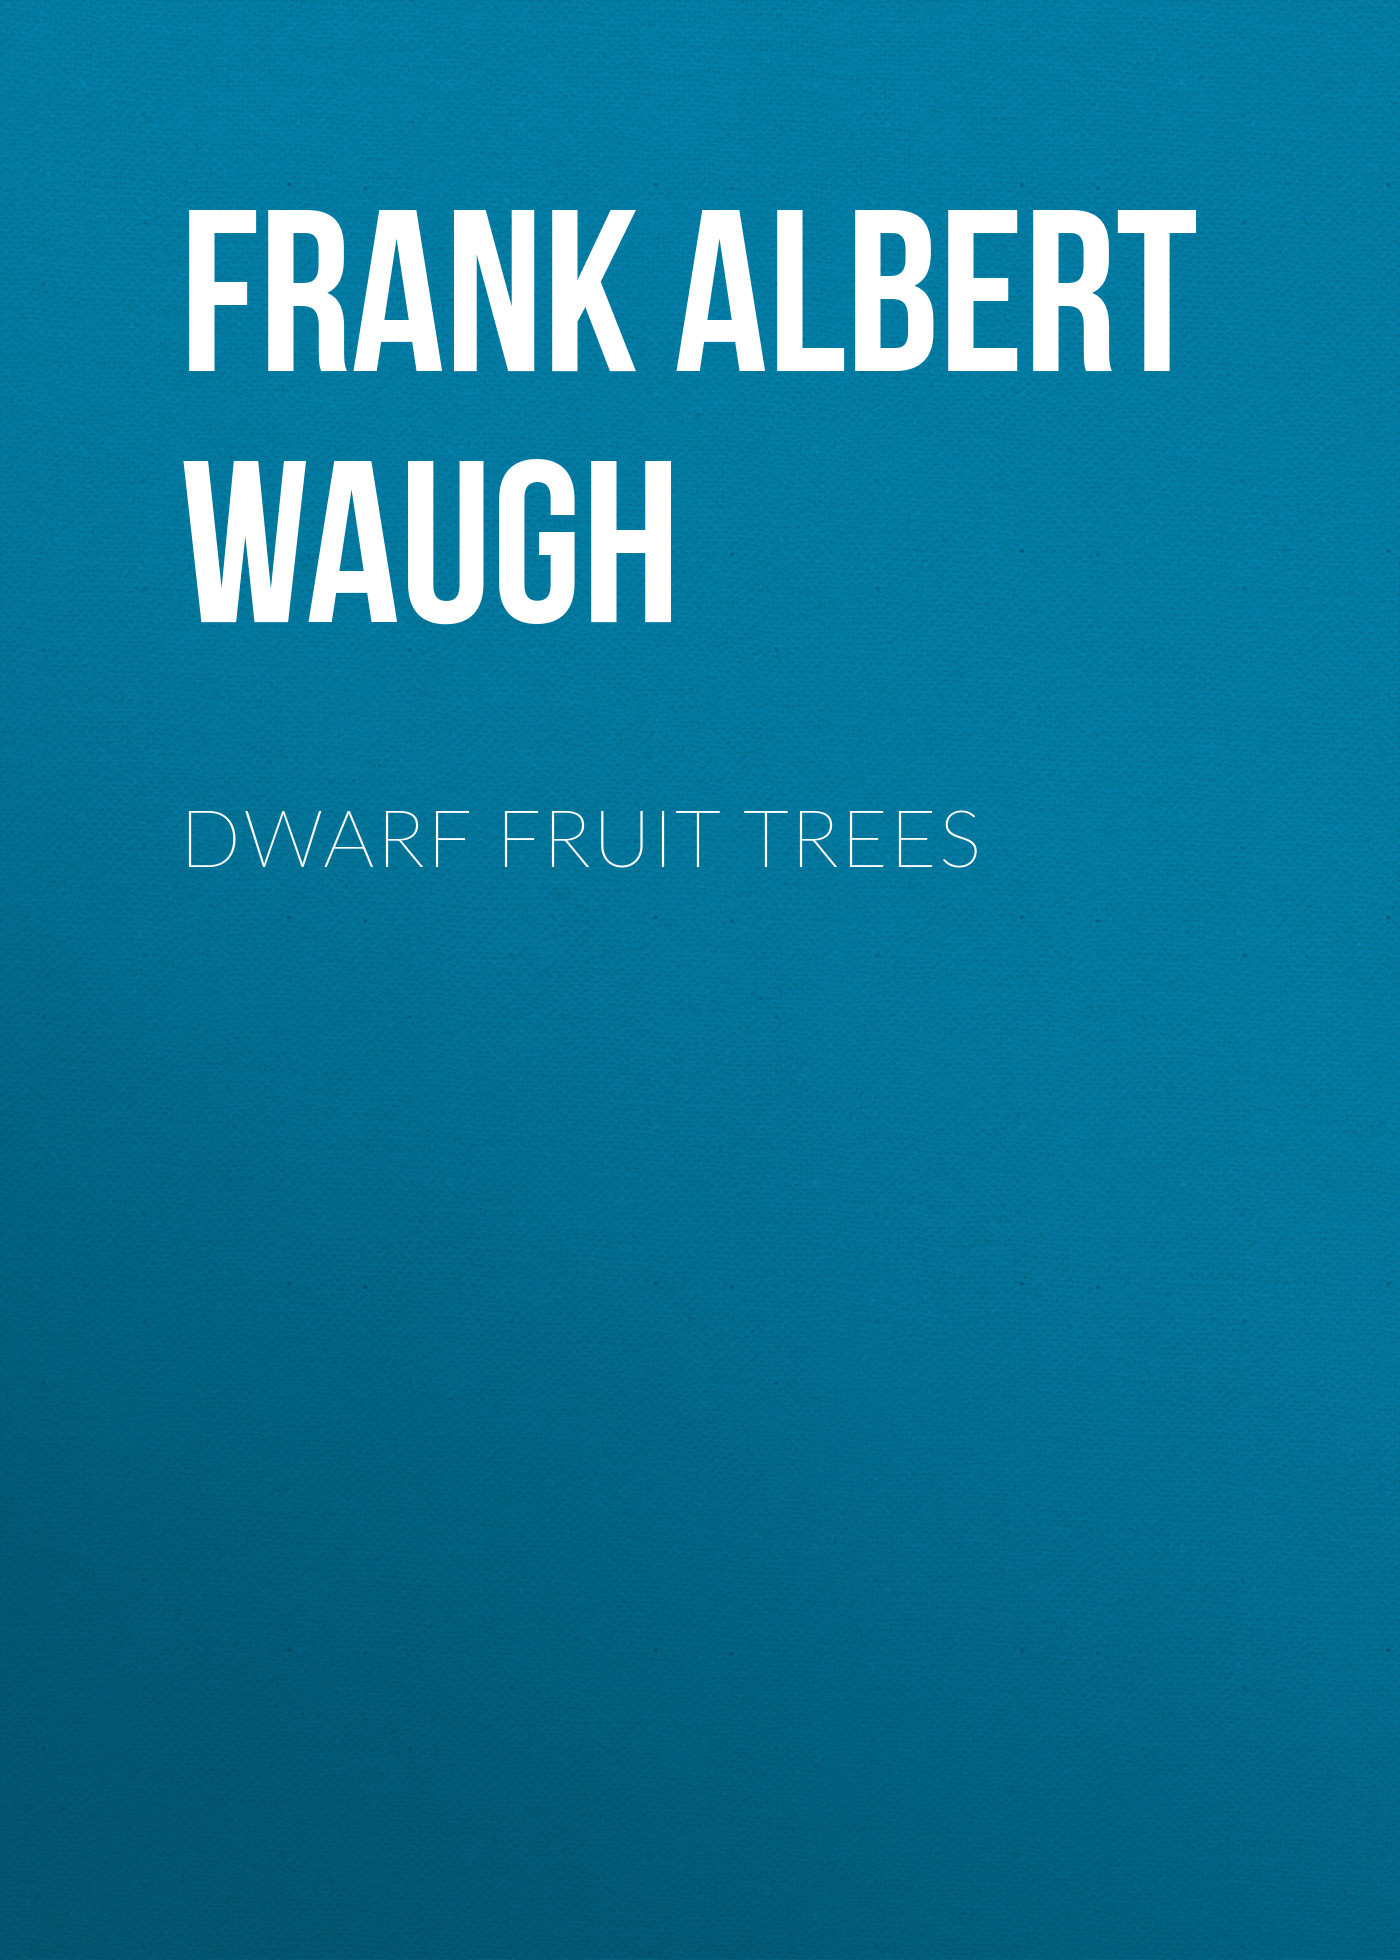 Frank Albert Waugh Dwarf Fruit Trees kate outdoor forest fotografico photo painted backdrops broken wooden chair autumn photography background with fruit trees